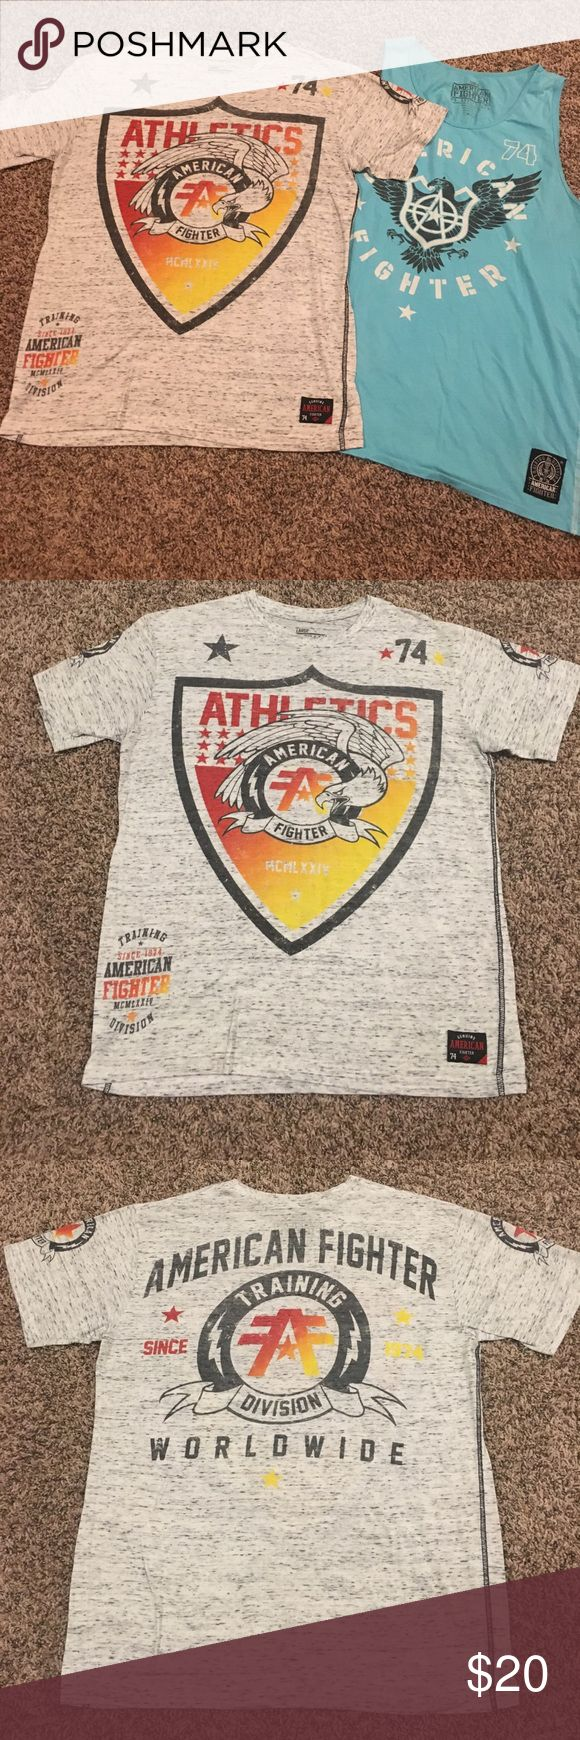 Set of 2 American Fighter Tees Large Set of 2 Men's American Fighter by Affliction from the Buckle shirts. One is a marble gray shirt sleeved shirt and the other is a solid turquoise tank. Great condition! American Fighter Shirts Tees - Short Sleeve